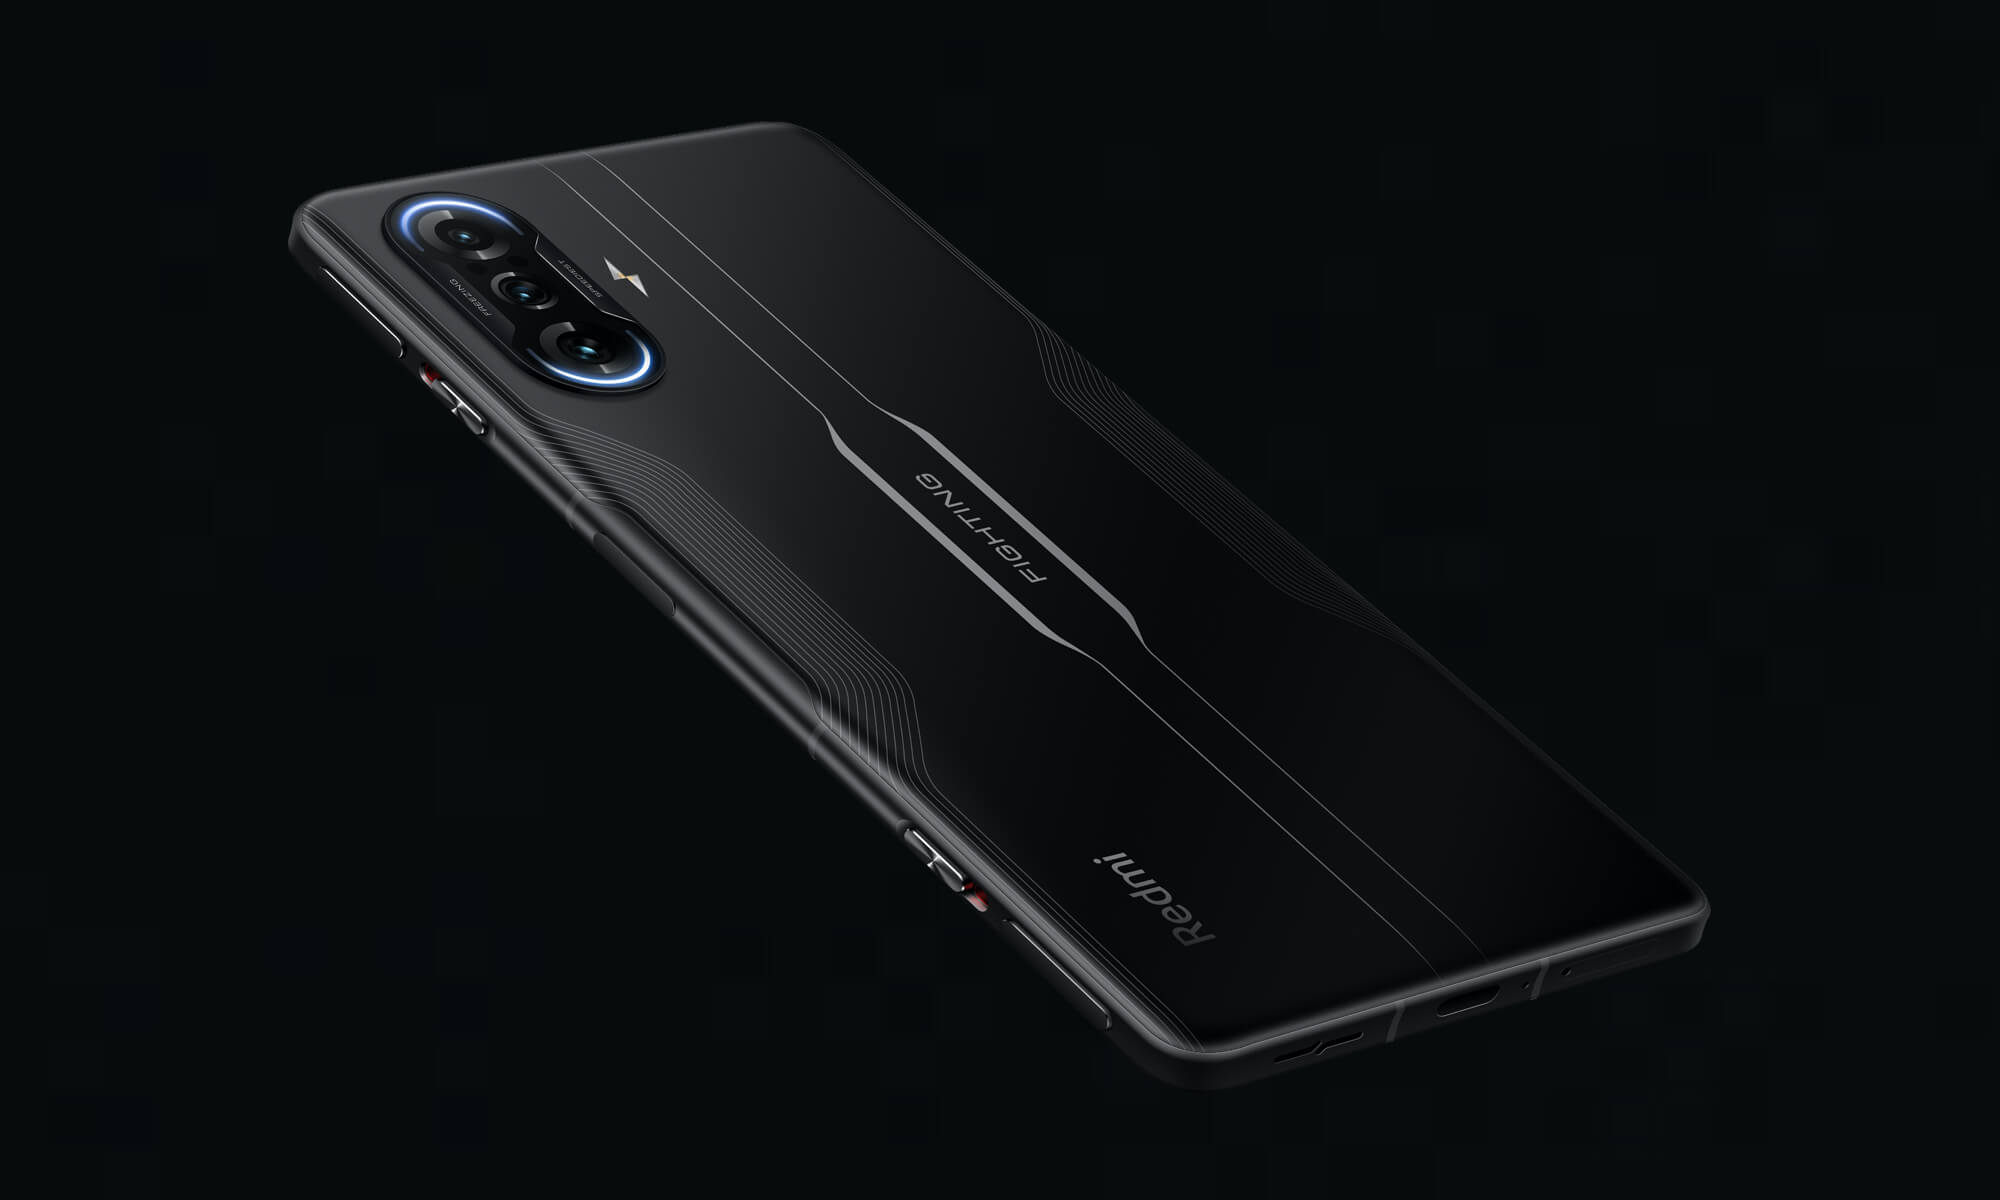 Представлен Redmi K40 Gaming Edition  OLED-дисплей с частотой 120 Гц, 5065 мАч и 67 Вт за $308